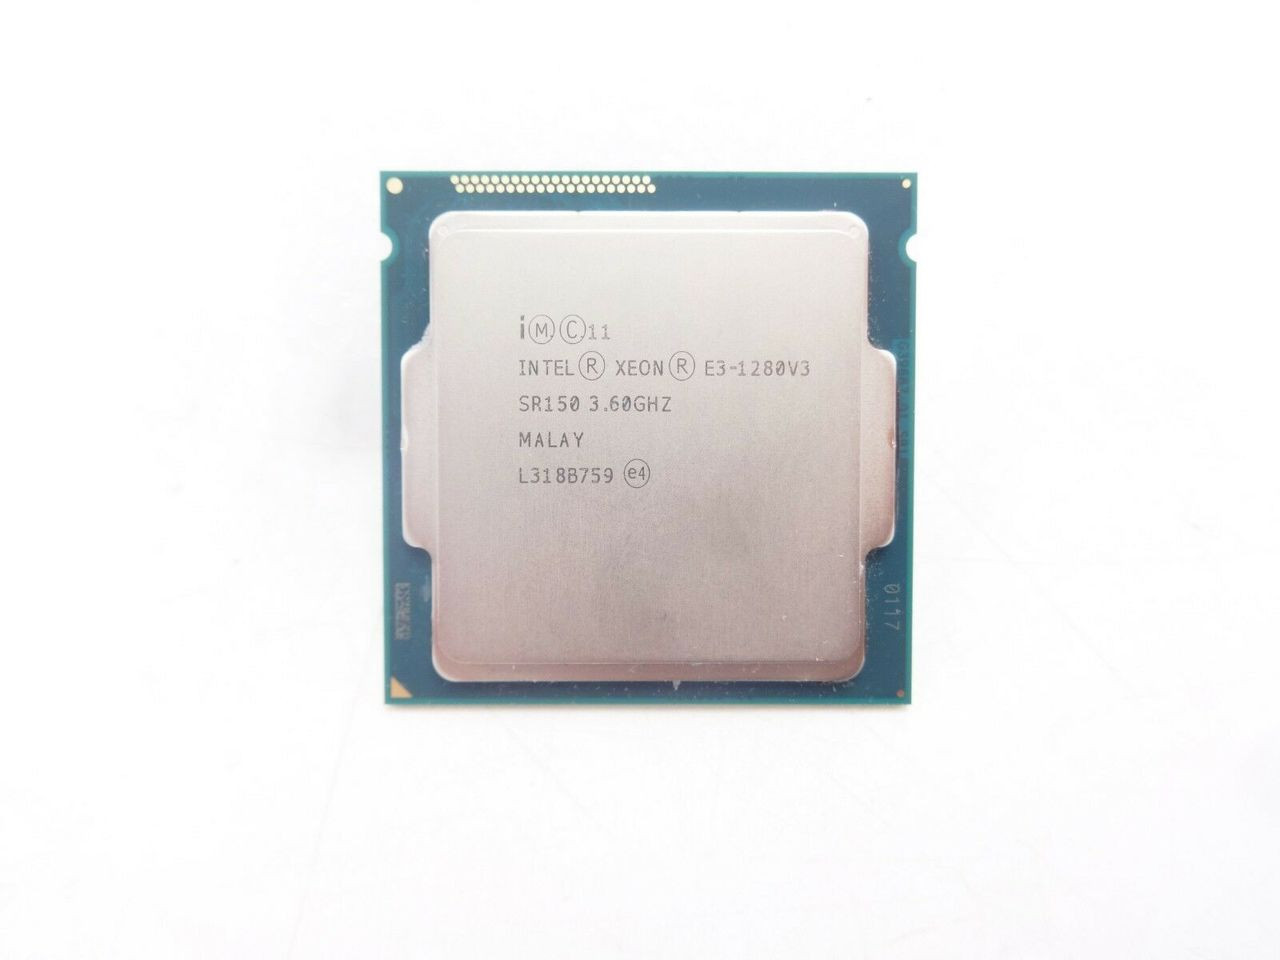 Intel SR150 E3-1280 V3 3.6GHZ/8MB Quad Core Processor